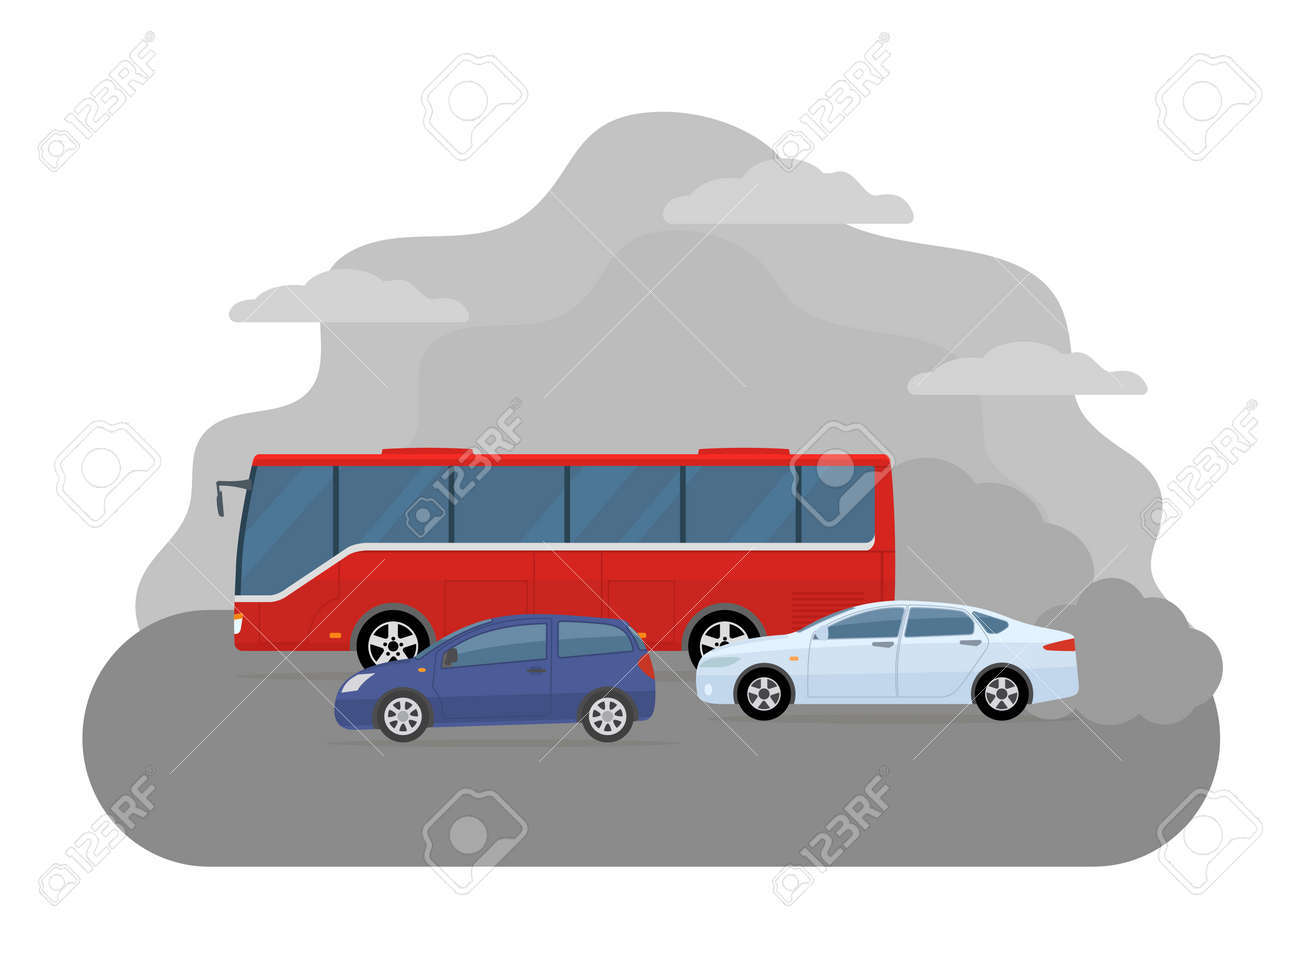 Pollution from the exhaust of cars. Ecology problems concept. Flat style, vector illustration. - 149493903